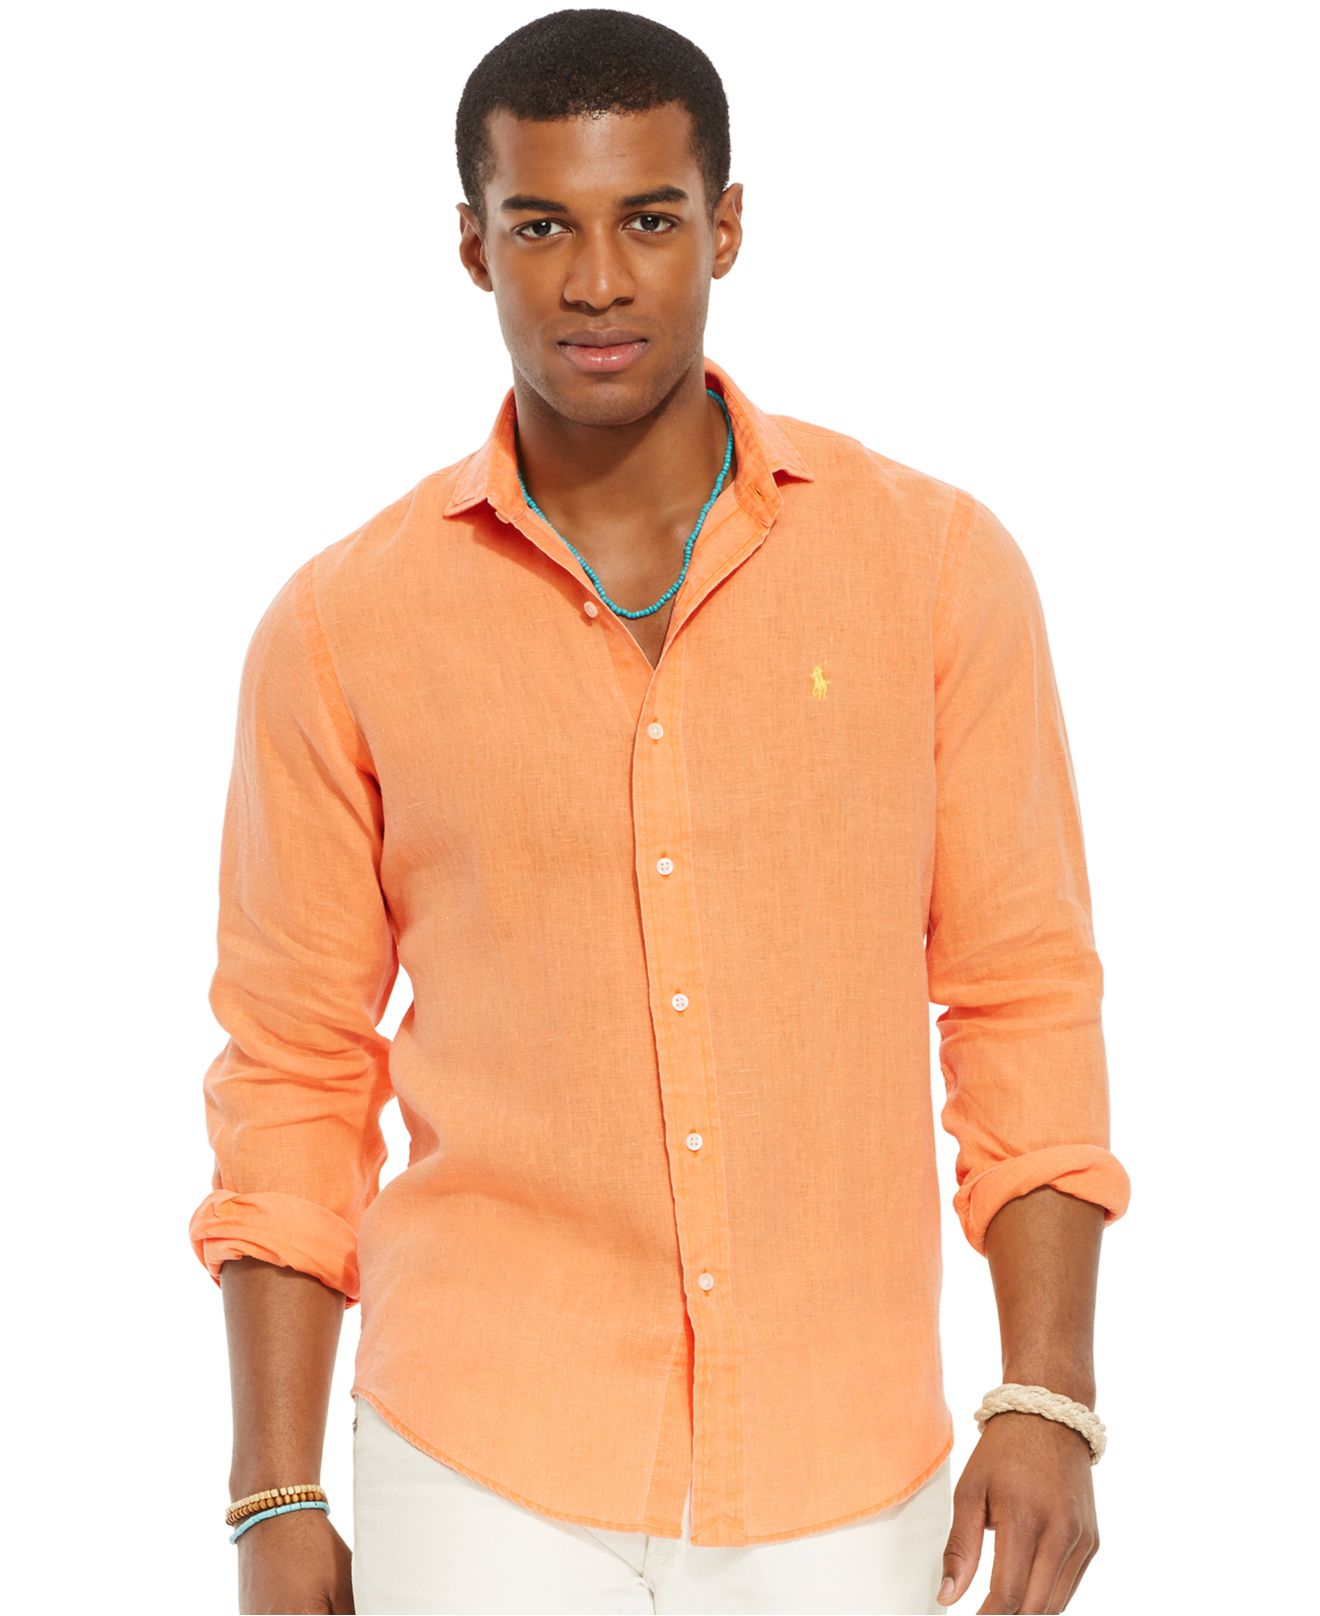 polo ralph lauren linen sport shirt in orange for men lyst. Black Bedroom Furniture Sets. Home Design Ideas